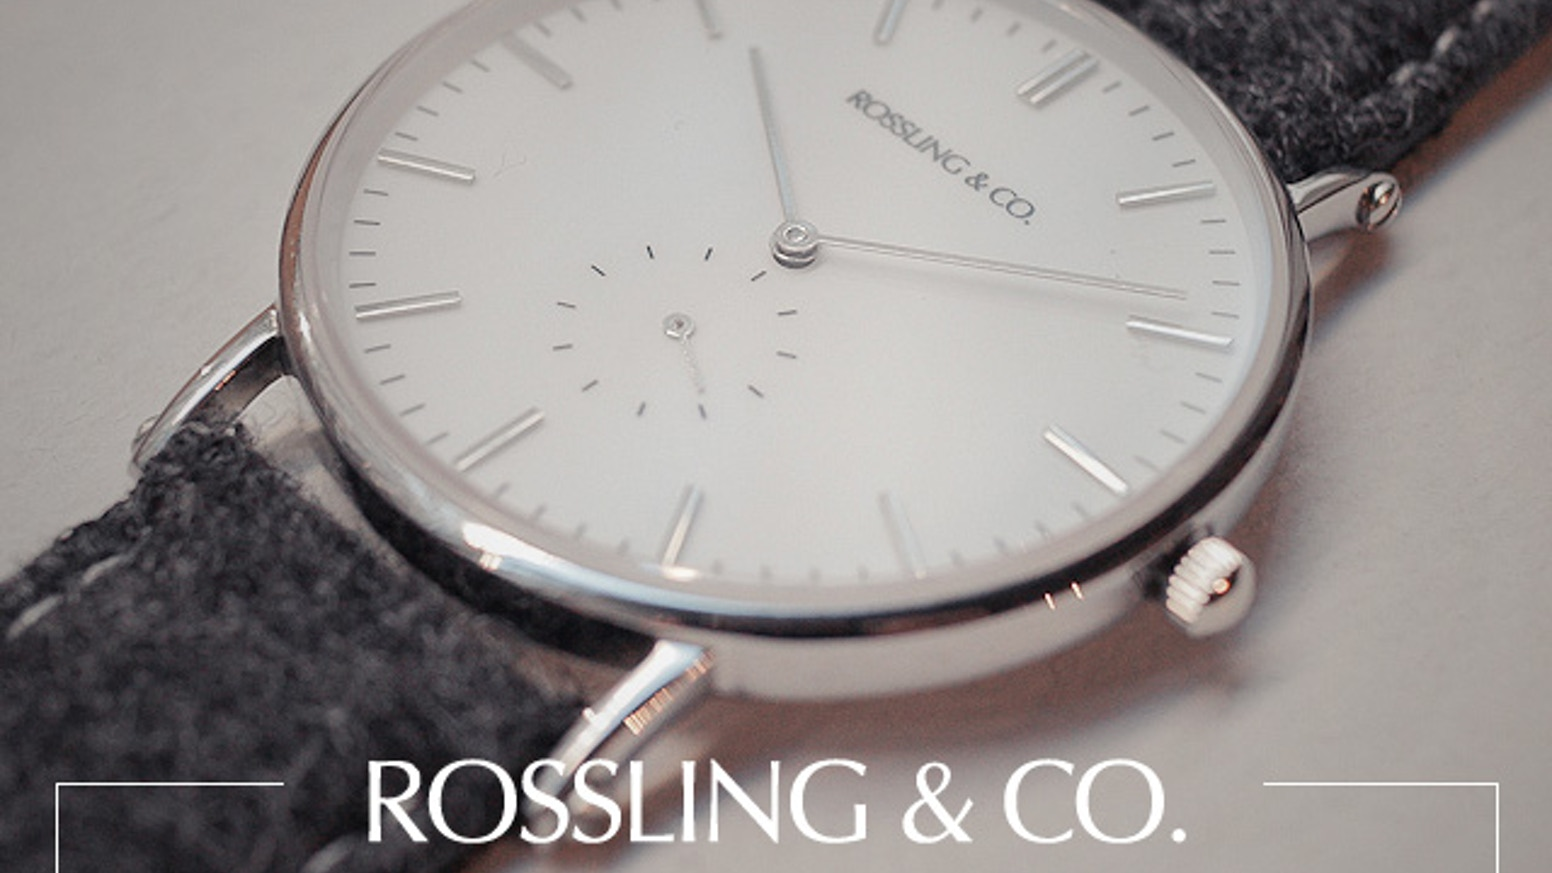 High-quality, ultra-thin watches. Versatile, fashionable, and affordable. With a unique tweed strap.